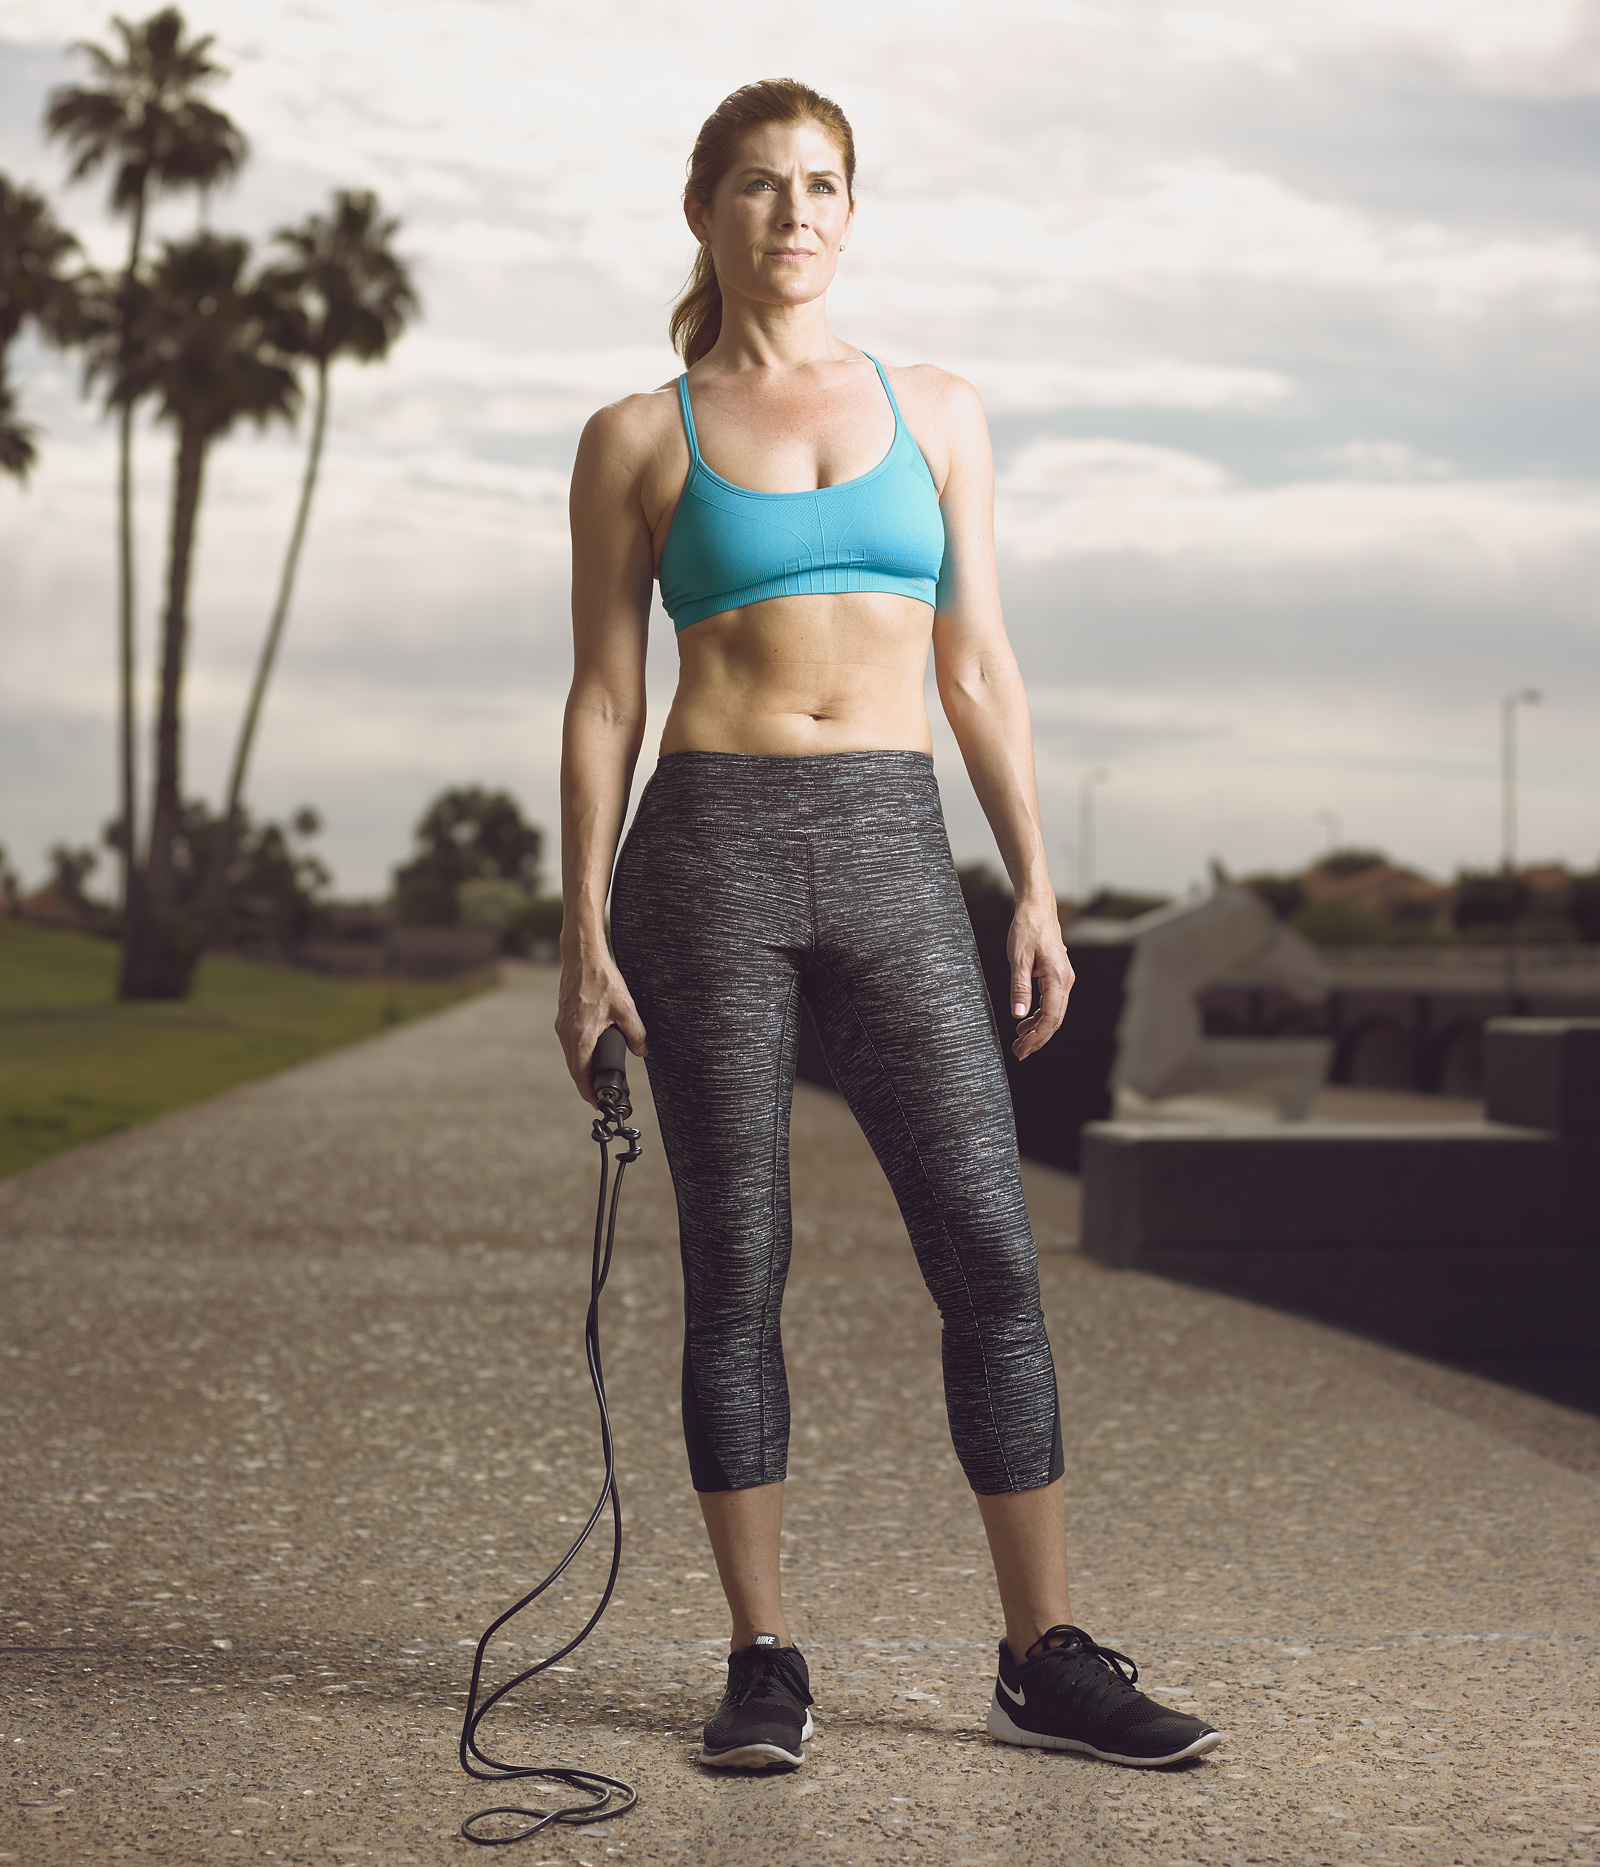 phoenix commercial photographer, fitness lifestyle photography